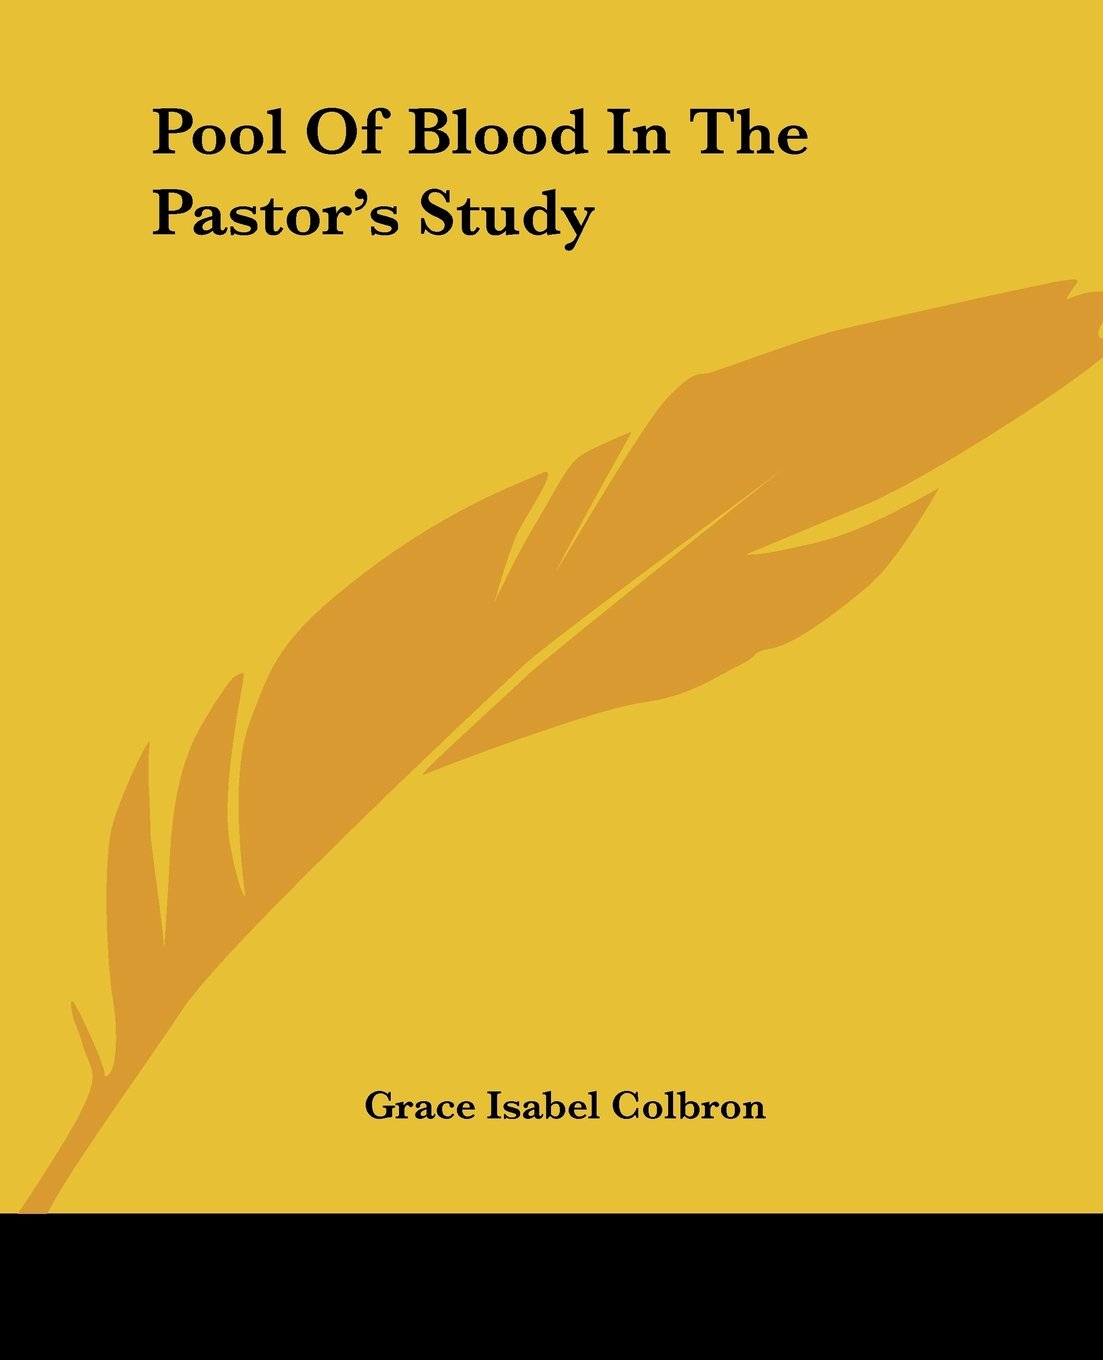 Pool Of Blood In The Pastor's Study pdf